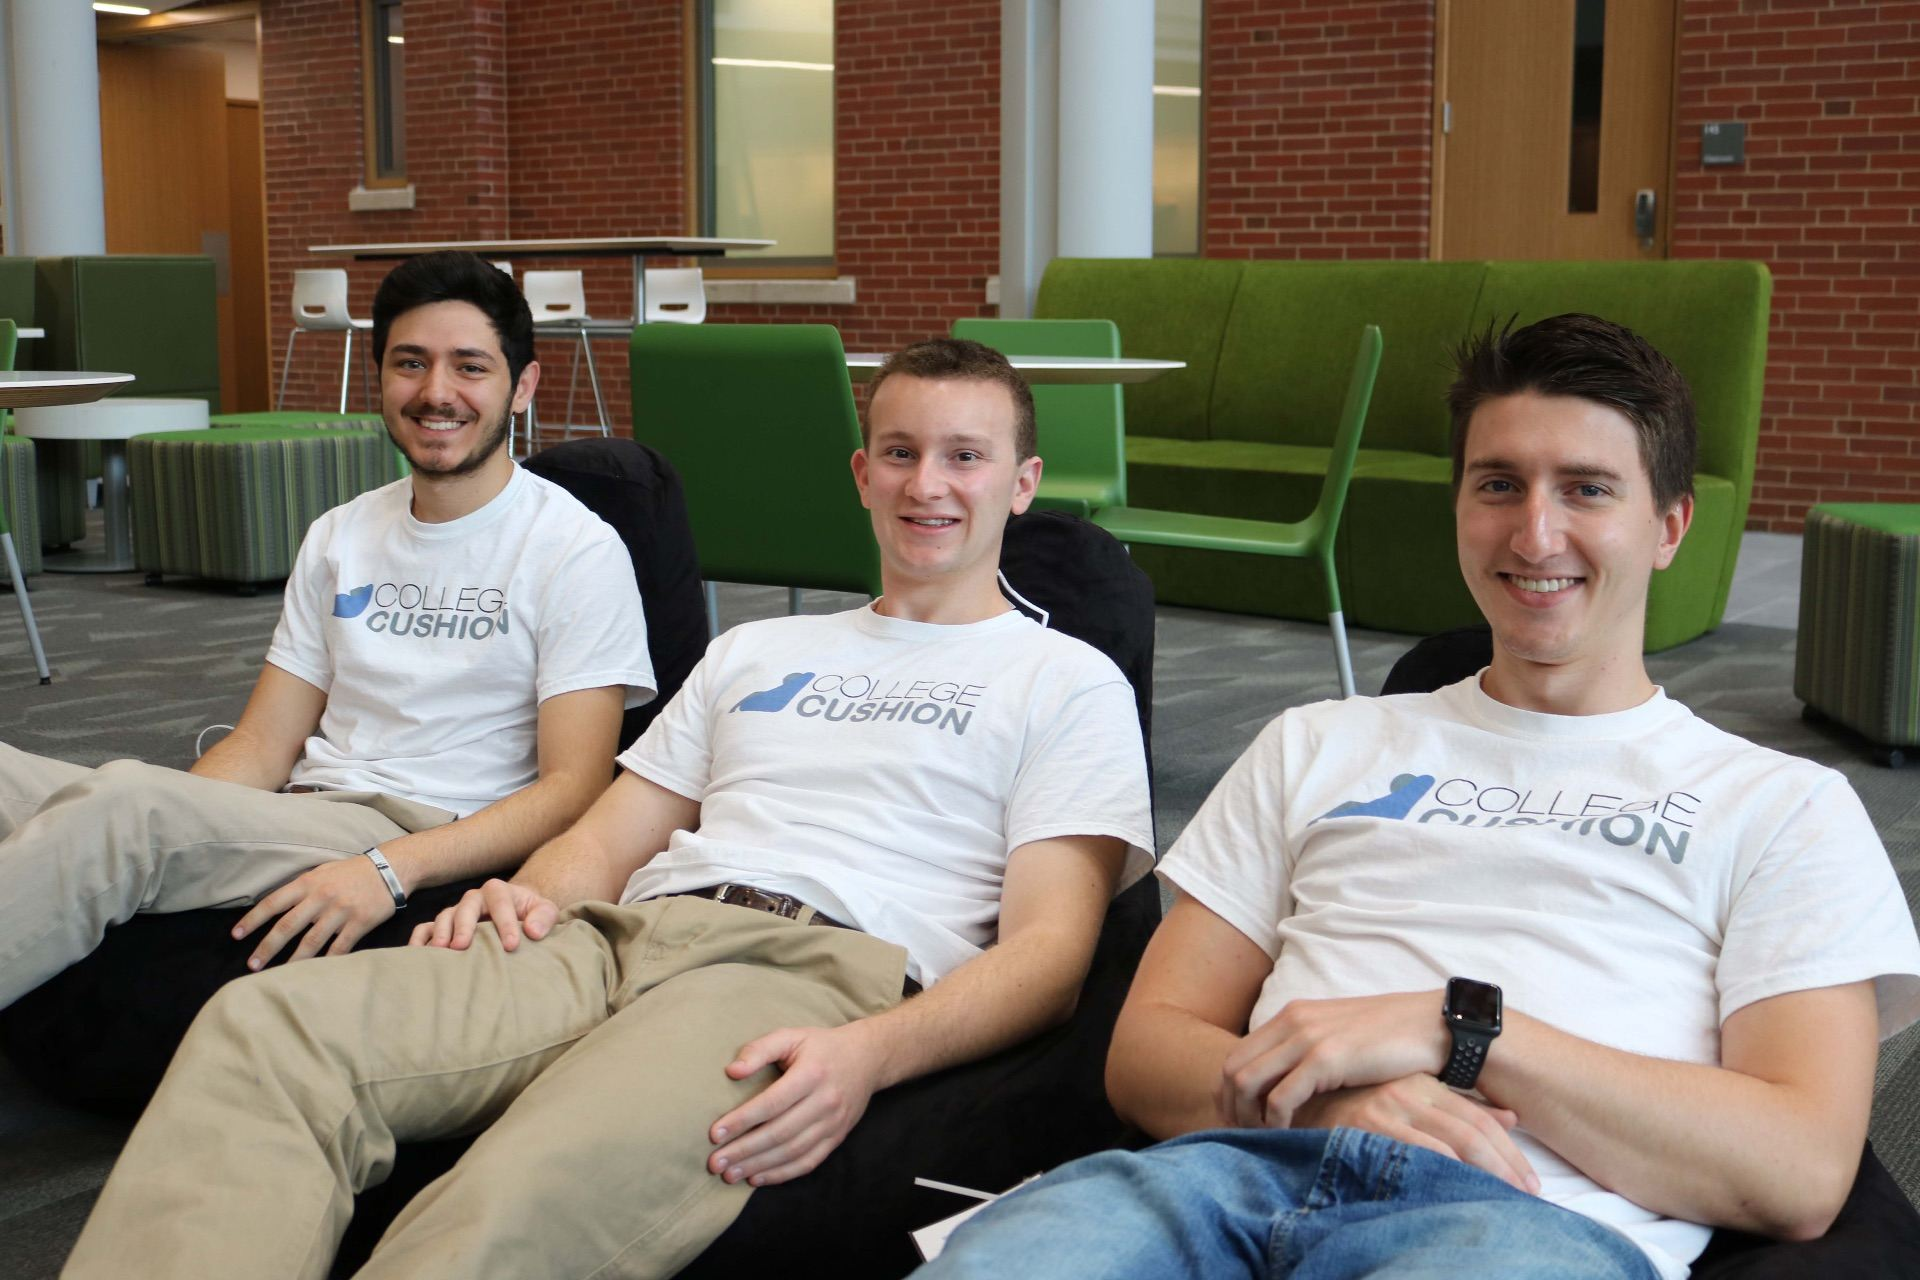 Michael Cruz '19, Shane Curran '19 and Andrew Drogan '19 sitting on their personalized bean bag chairs in Ryan.